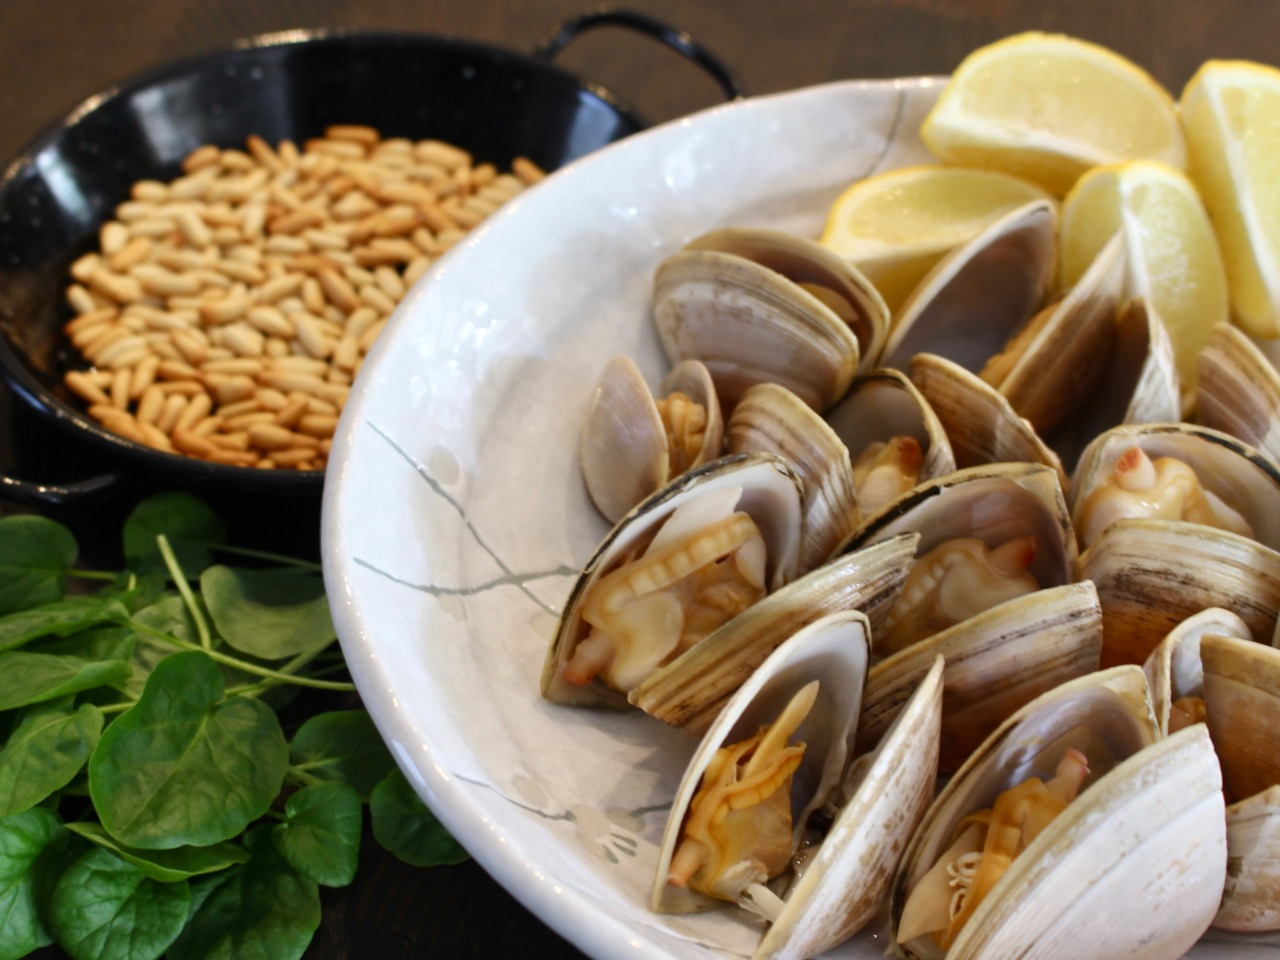 Cloudy Bay clams, Pinoli pine nuts